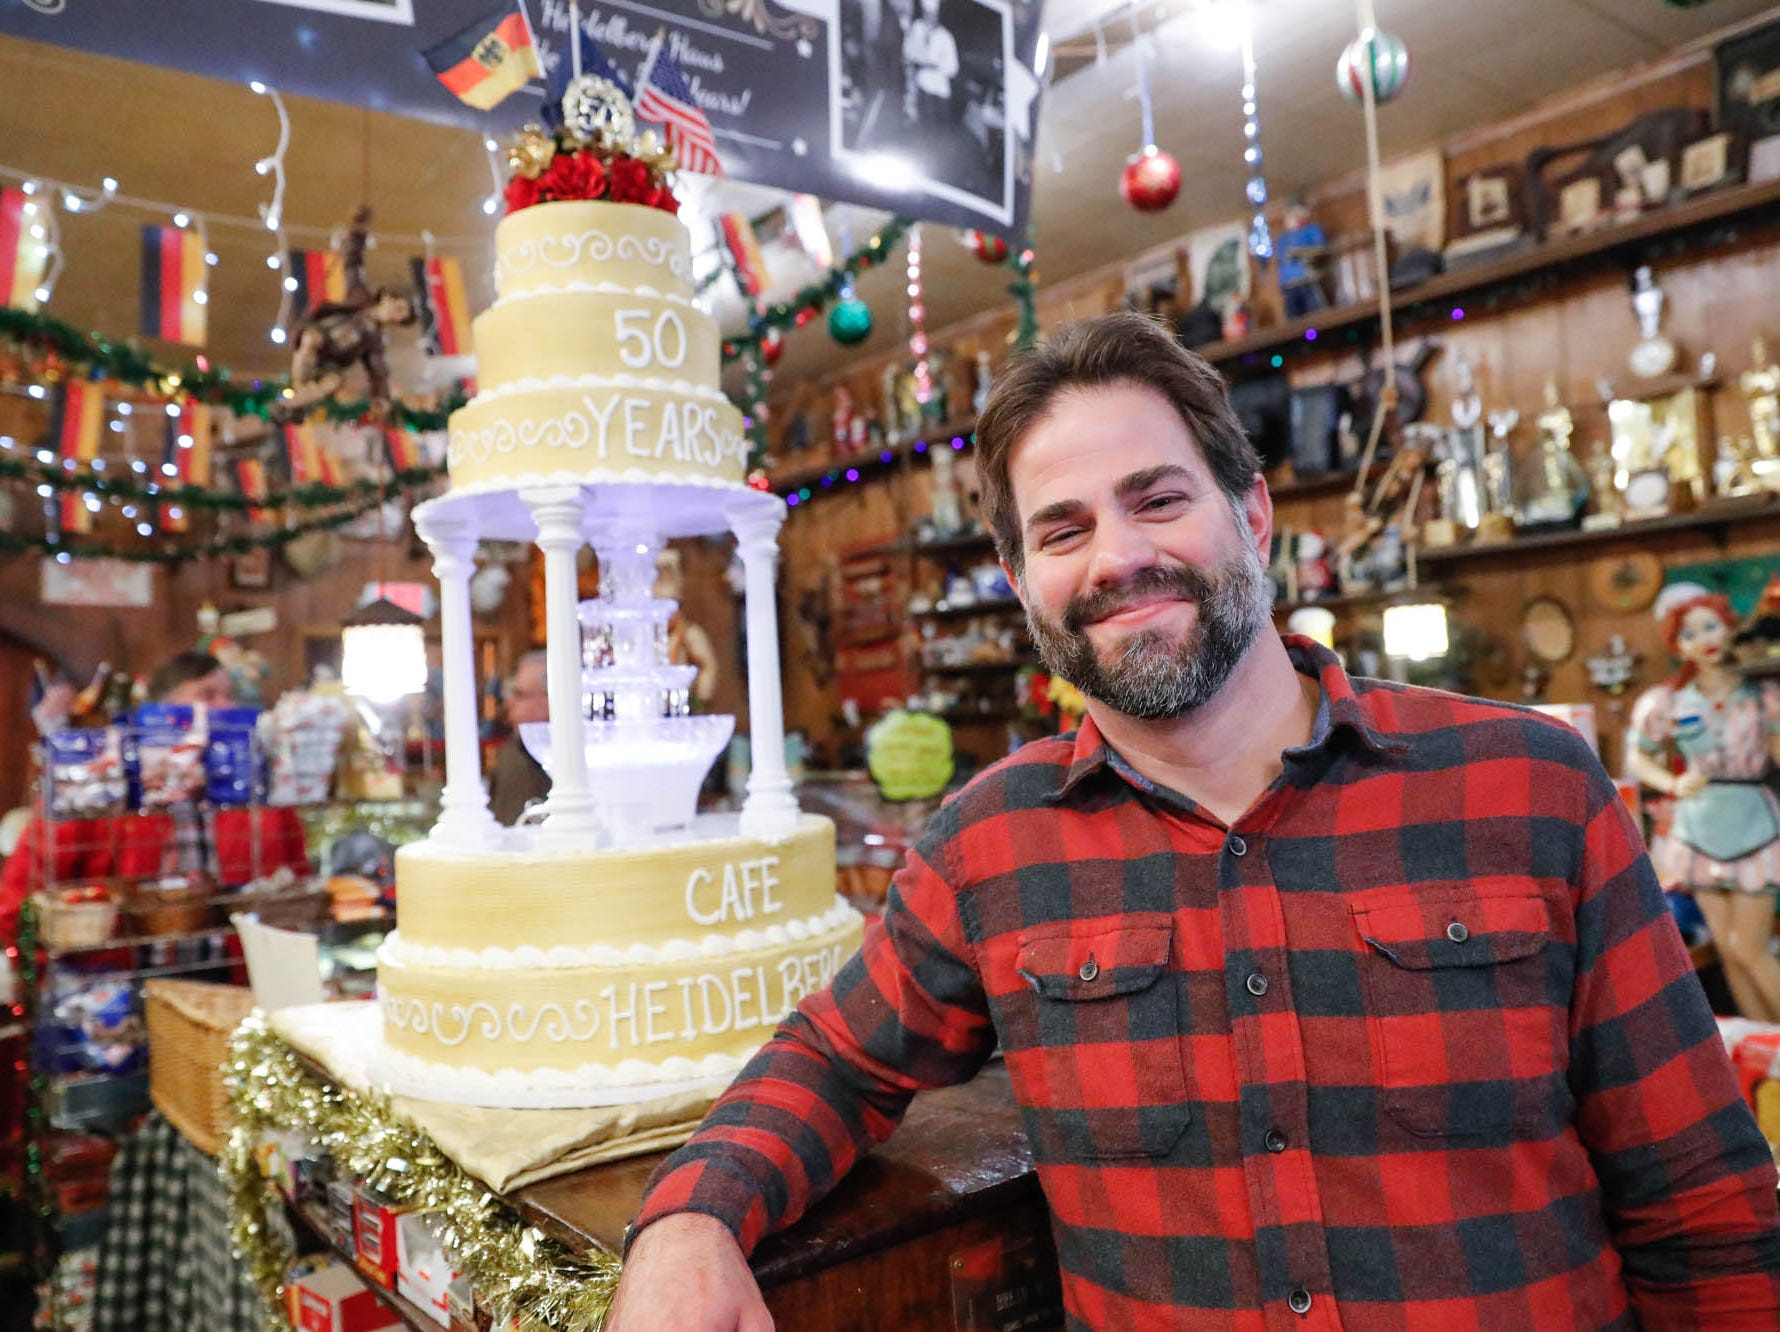 Pastry Chef Charles Corkwell stands by the Heidelberg Haus cake he created to celebrate the cafe's 50th year in business, during a party with guests and regulars, at Heidelberg Haus Cafe and Bakery,7625 Pendleton Pike, Indianapolis Ind., on Saturday, Dec. 8th, 2018. The cafe, bakery, and German grocery are well known for its extensive collection of German Kitsch and baked goods.